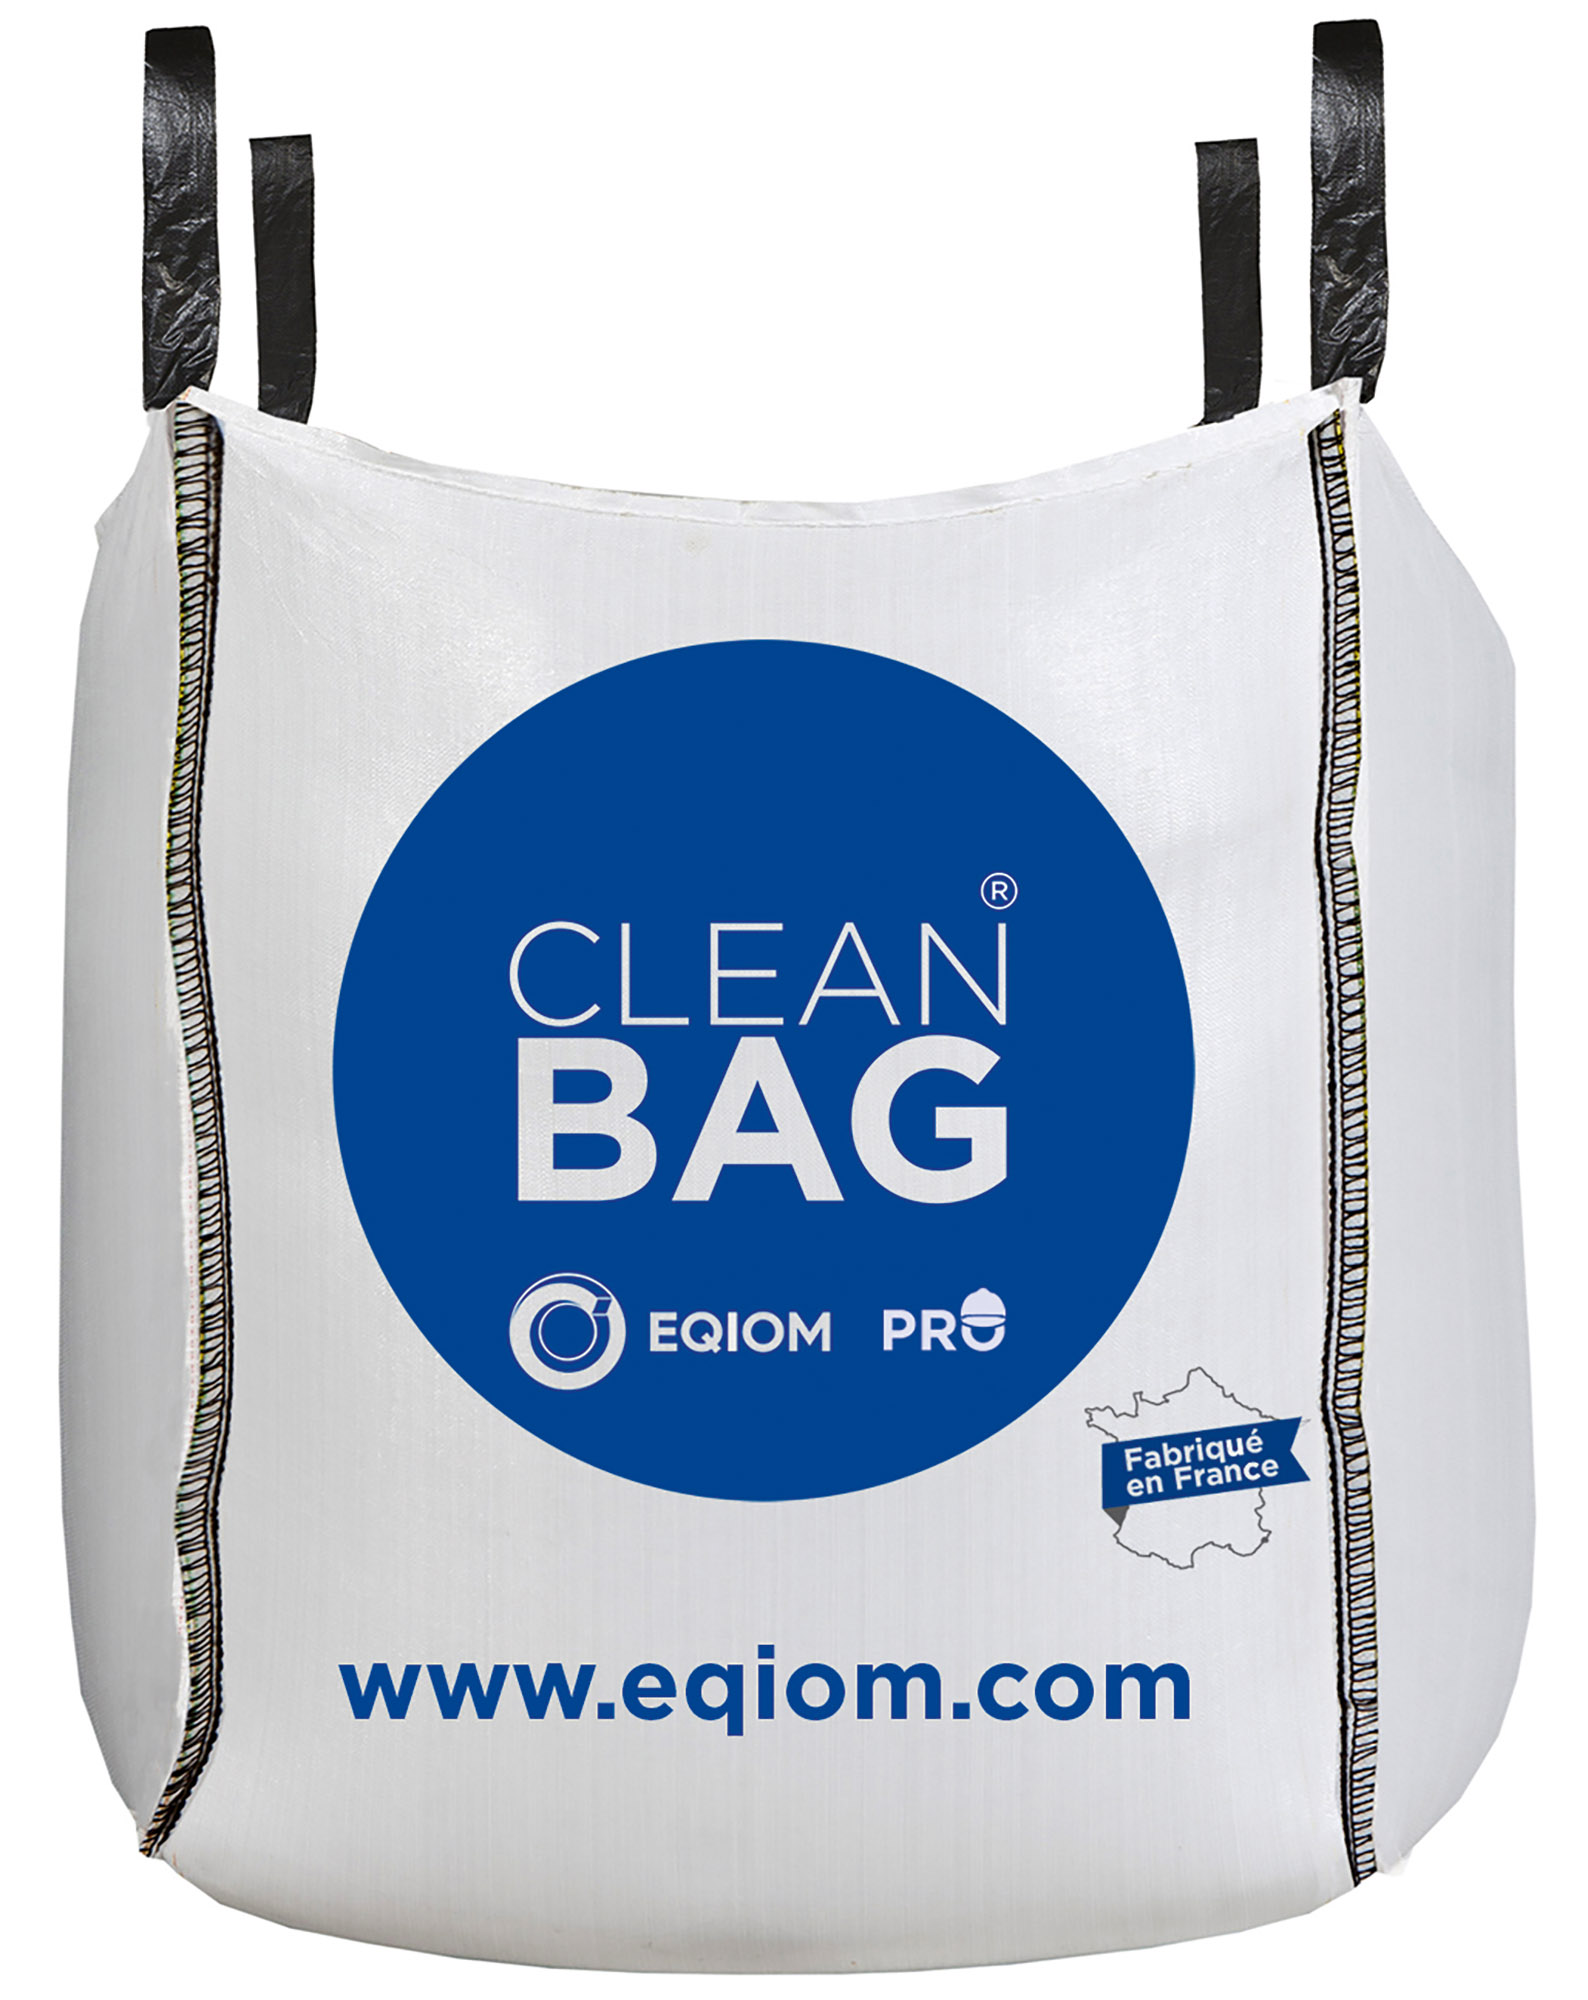 Clean Bag, le granulat en big bag d'Eqiom